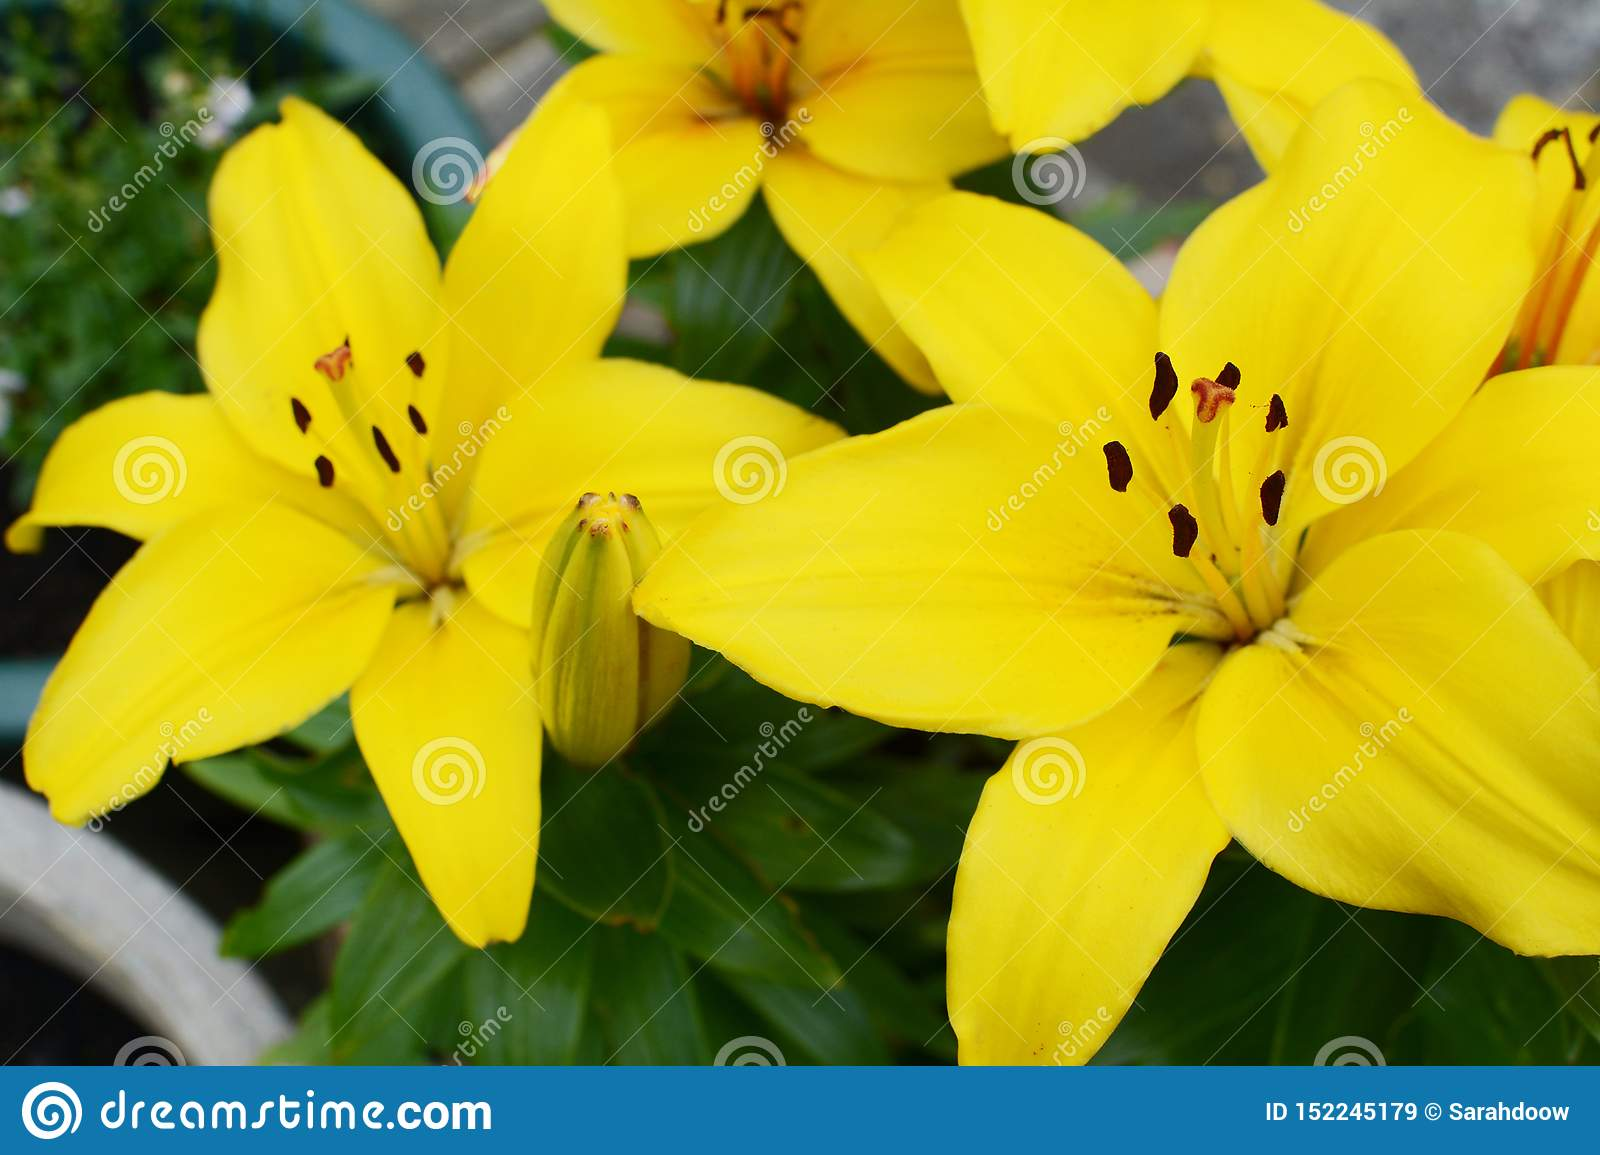 Vibrant Yellow Lily Blooms In A Summer Garden Stock Image Image